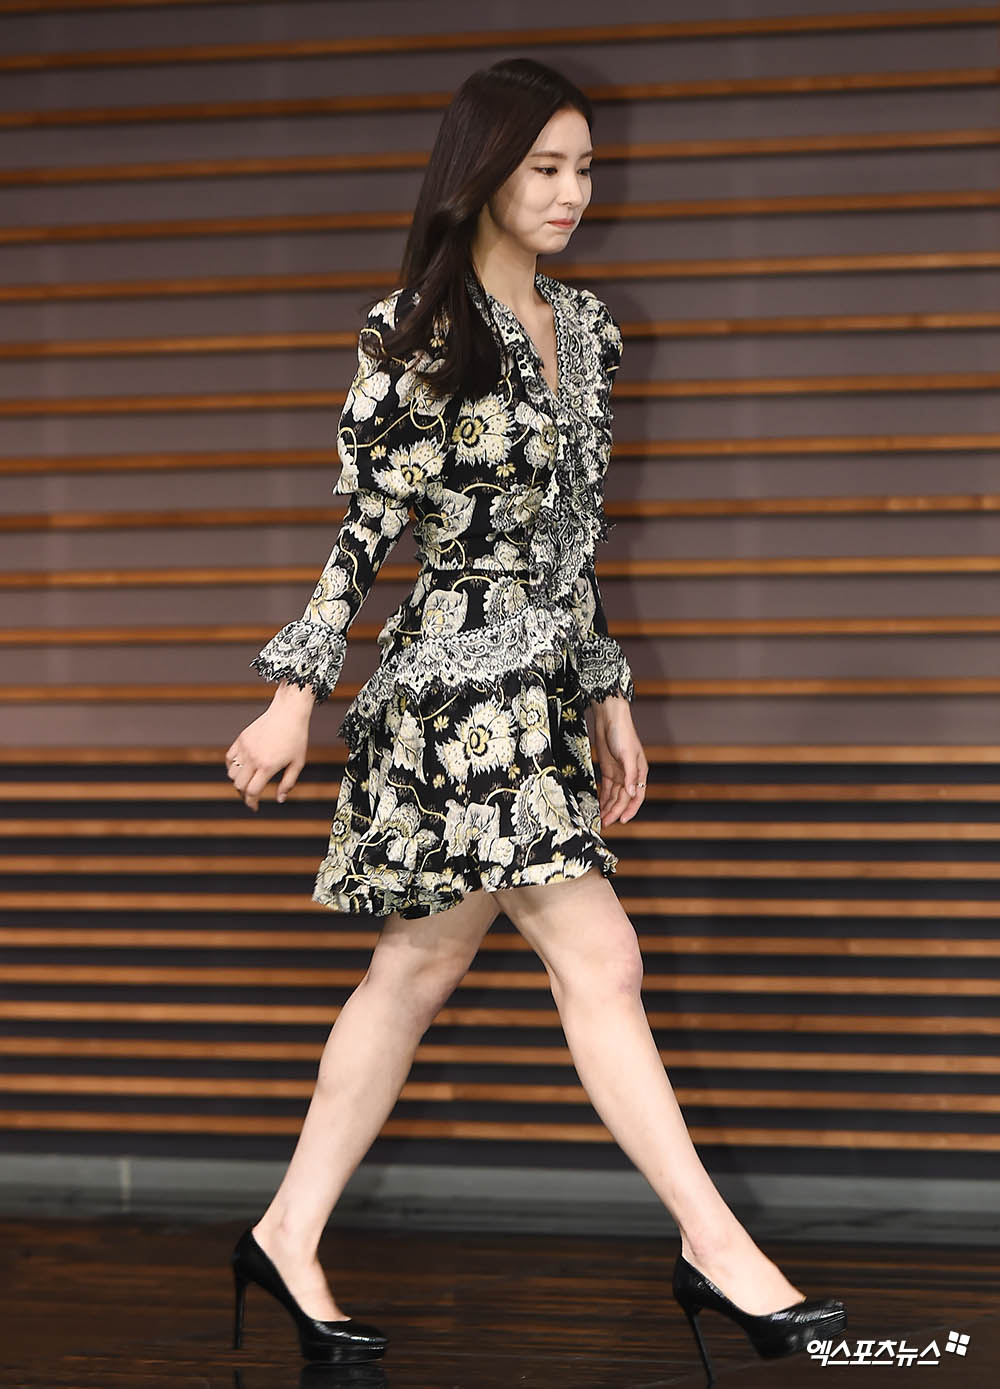 <p> 17 Afternoon Seoul Sangam-Dong MBC opened in every new Museum By command production presentation attended actor Shin Se-kyung, this photo has.</p>